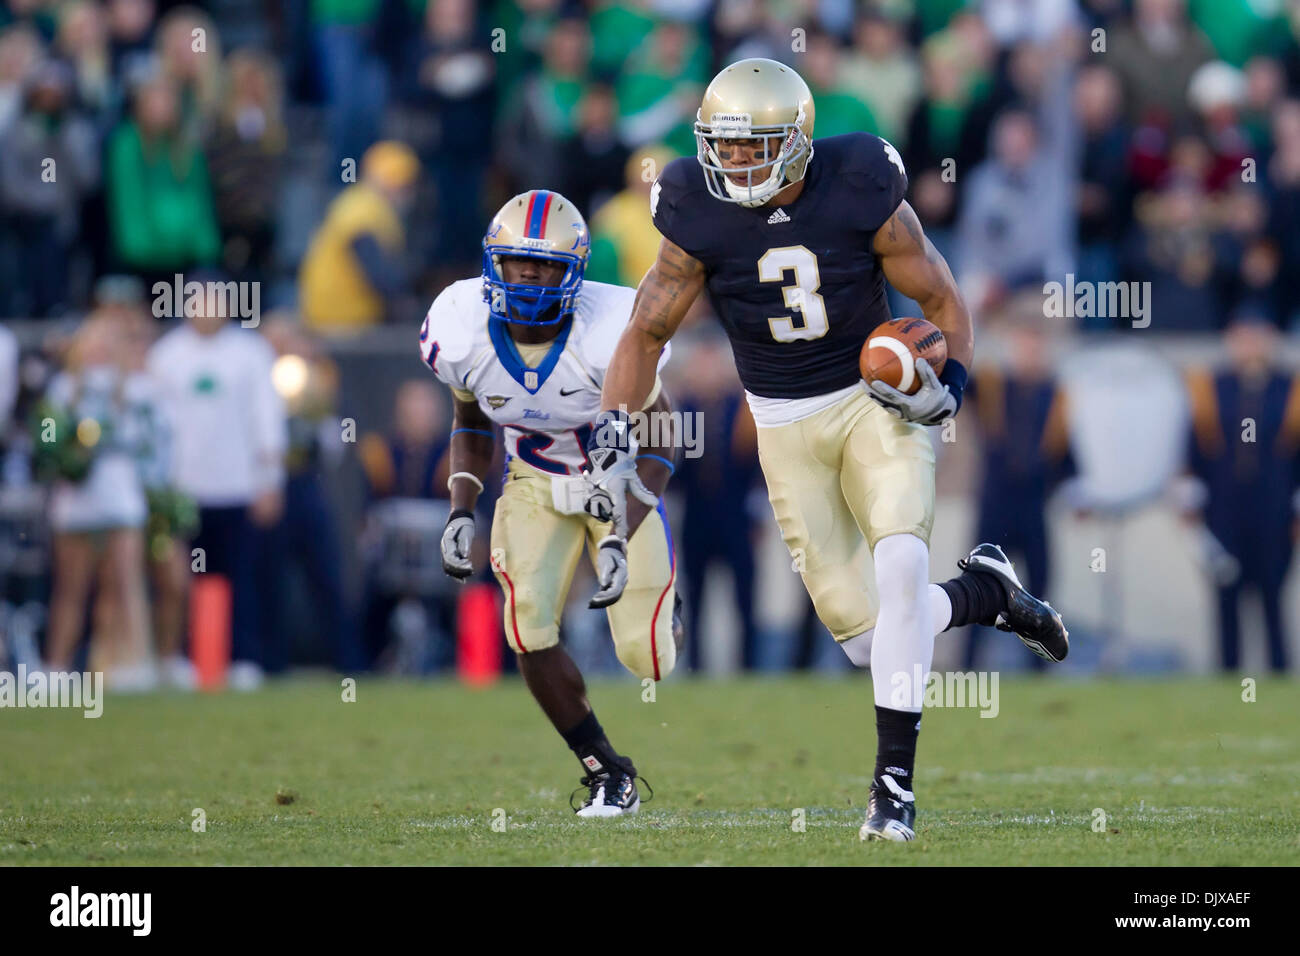 Oct. 30, 2010 - South Bend, Indiana, United States of America - Notre Dame wide receiver Michael Floyd (#3) runs for yardage after catch during NCAA football game between Tulsa and Notre Dame.  The Tulsa Golden Hurricane defeated the Notre Dame Fighting Irish 28-27 in game at Notre Dame Stadium in South Bend, Indiana. (Credit Image: © John Mersits/Southcreek Global/ZUMApress.com) - Stock Image